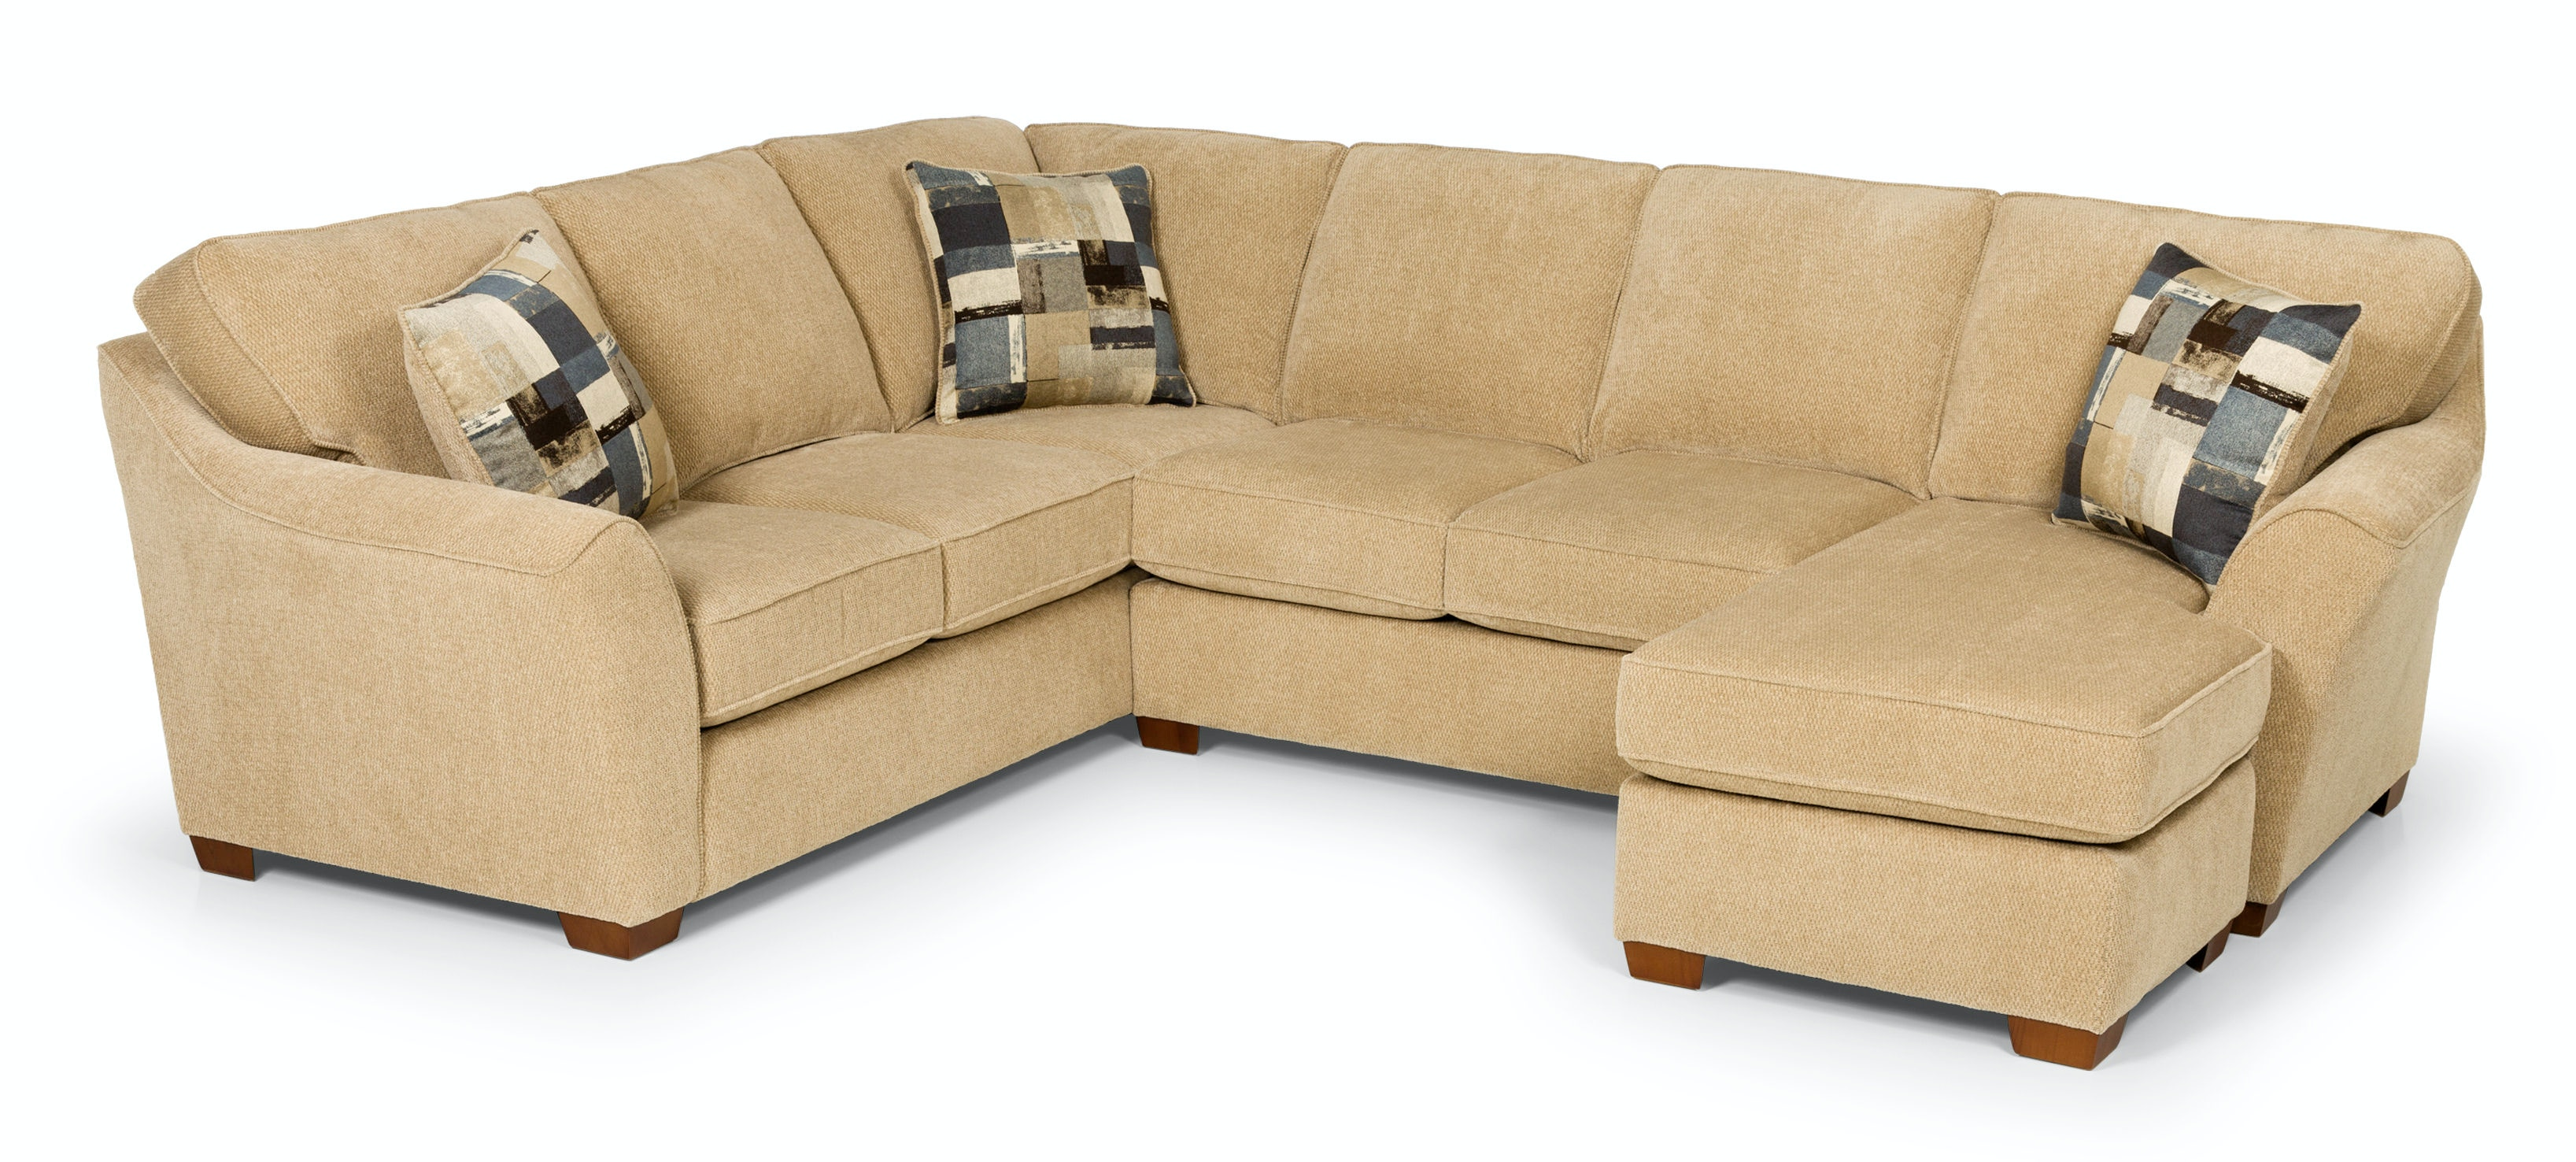 Stanton Furniture Sectional 112 Sectional